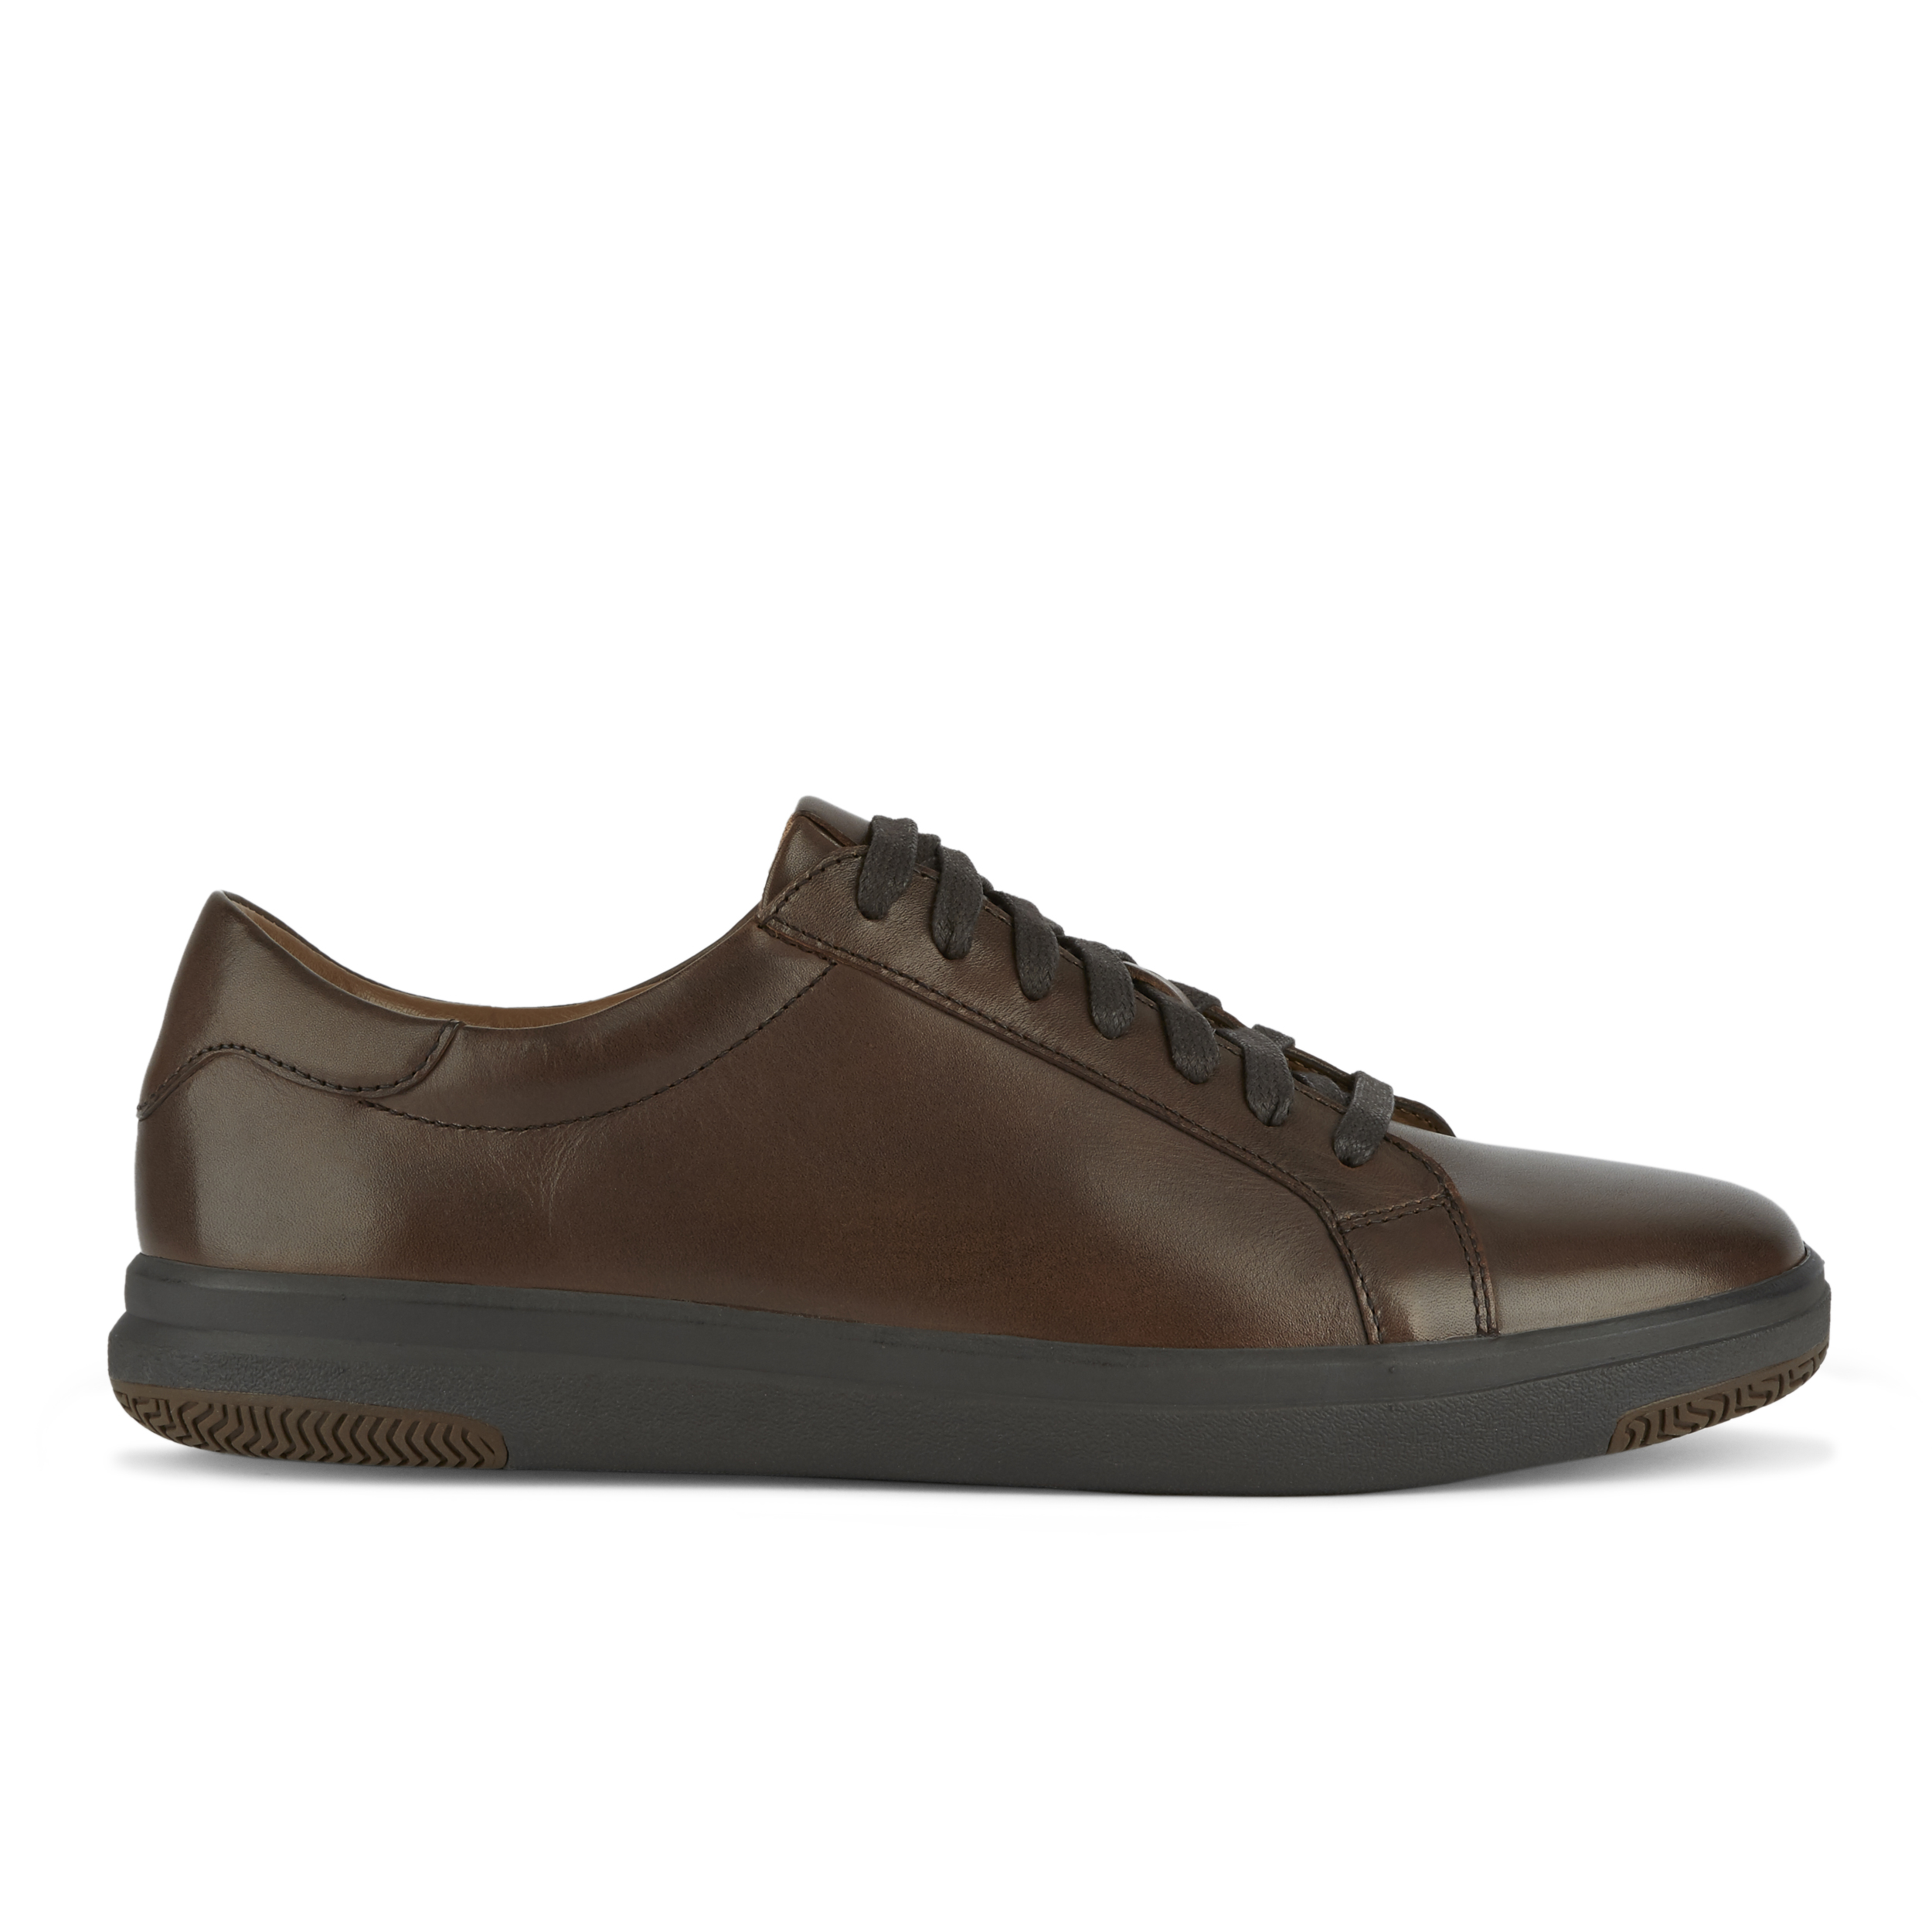 Dockers-Mens-Gilmore-Genuine-Leather-Casual-Fashion-Lace-up-Sneaker-Shoe thumbnail 18